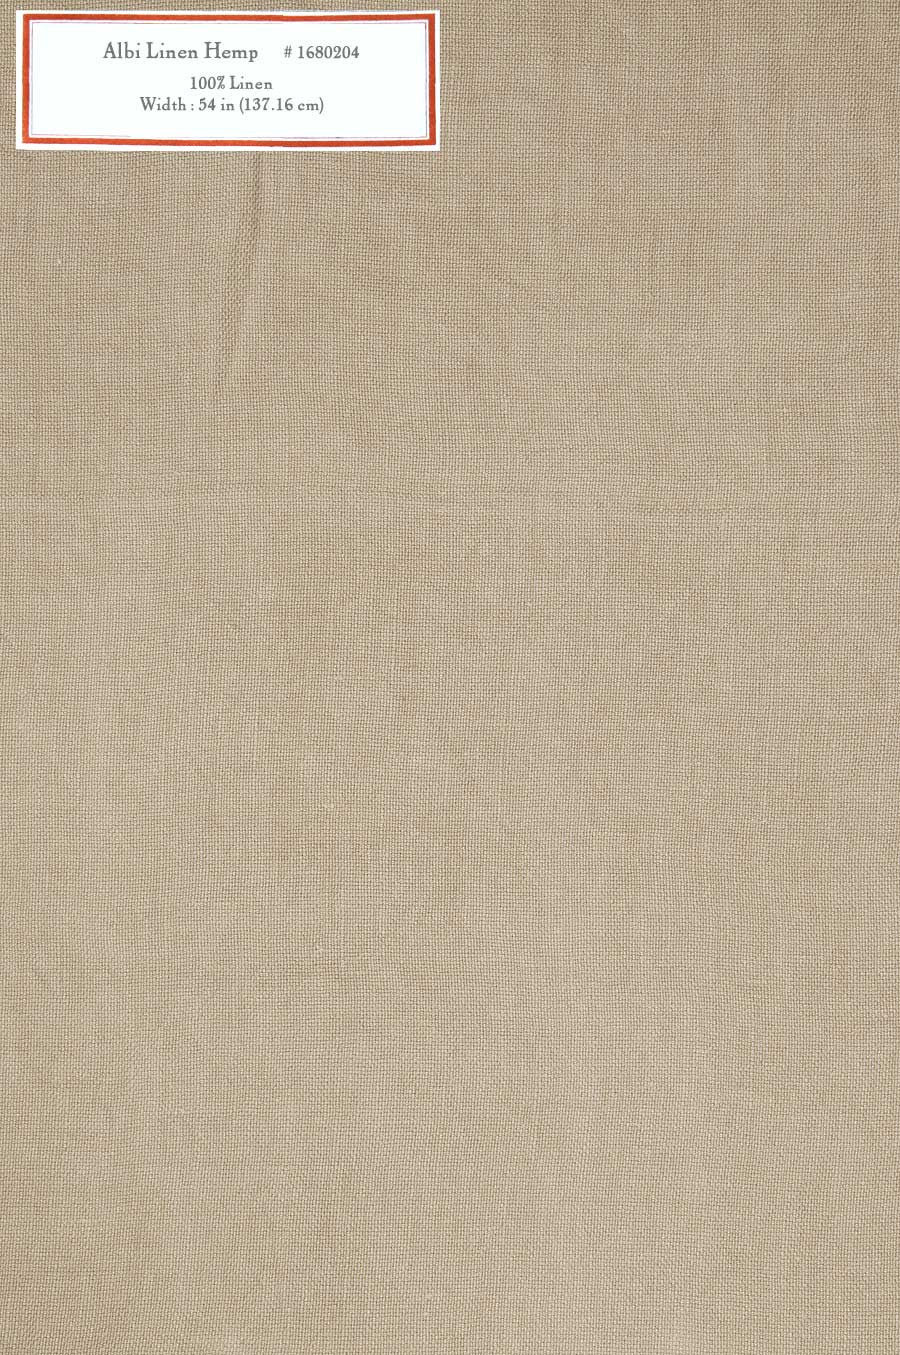 Home Decorative Fabric - Albi Linen Hemp